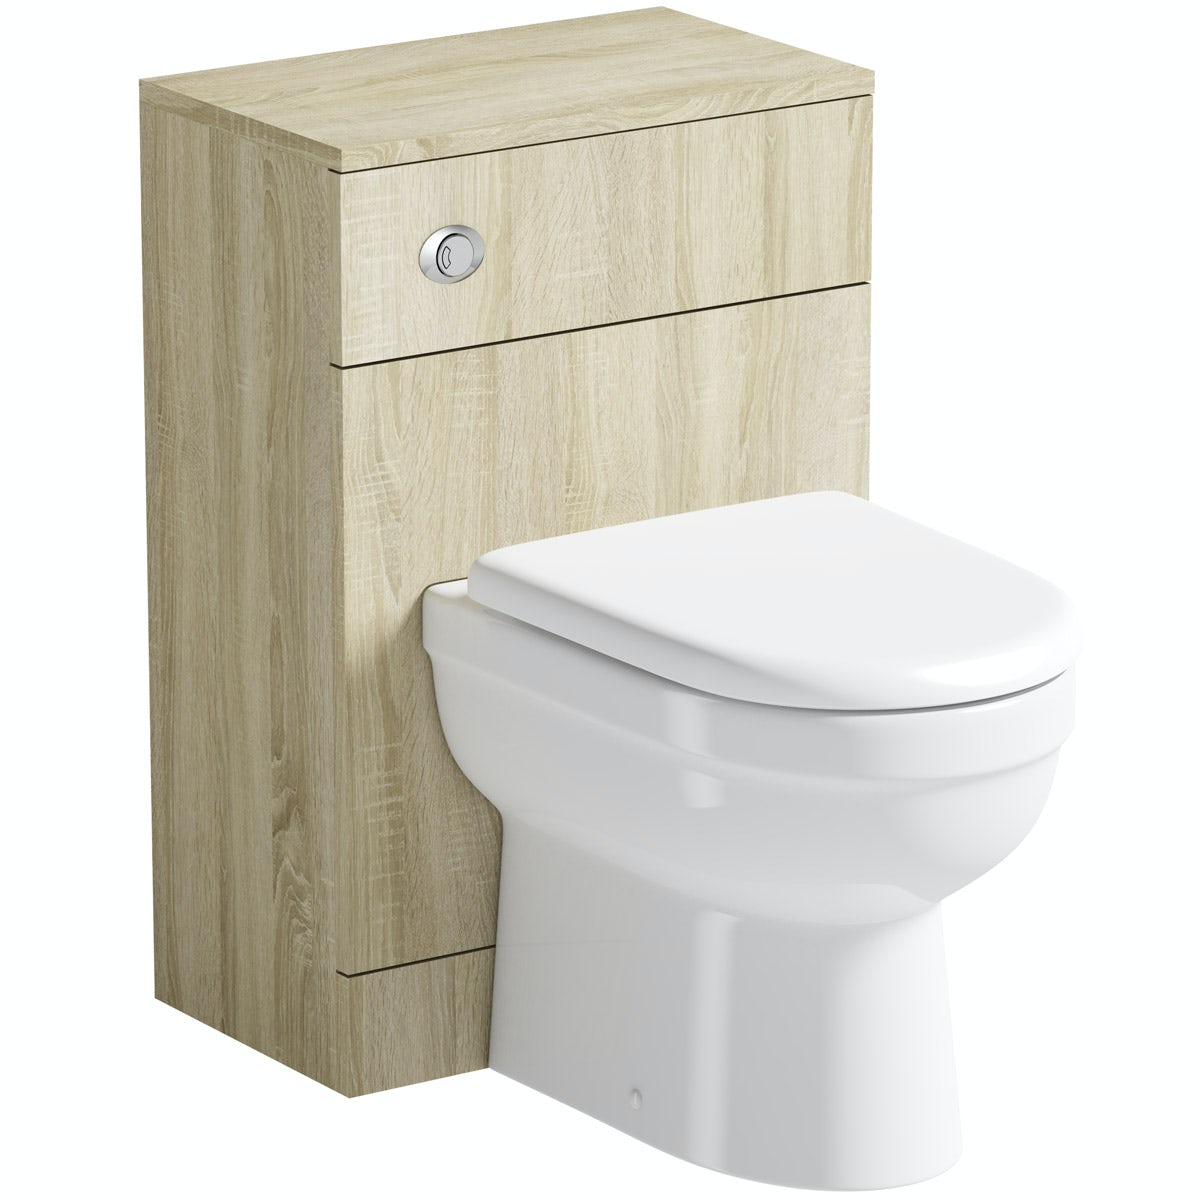 Orchard Eden oak slimline back to wall unit and toilet with seat